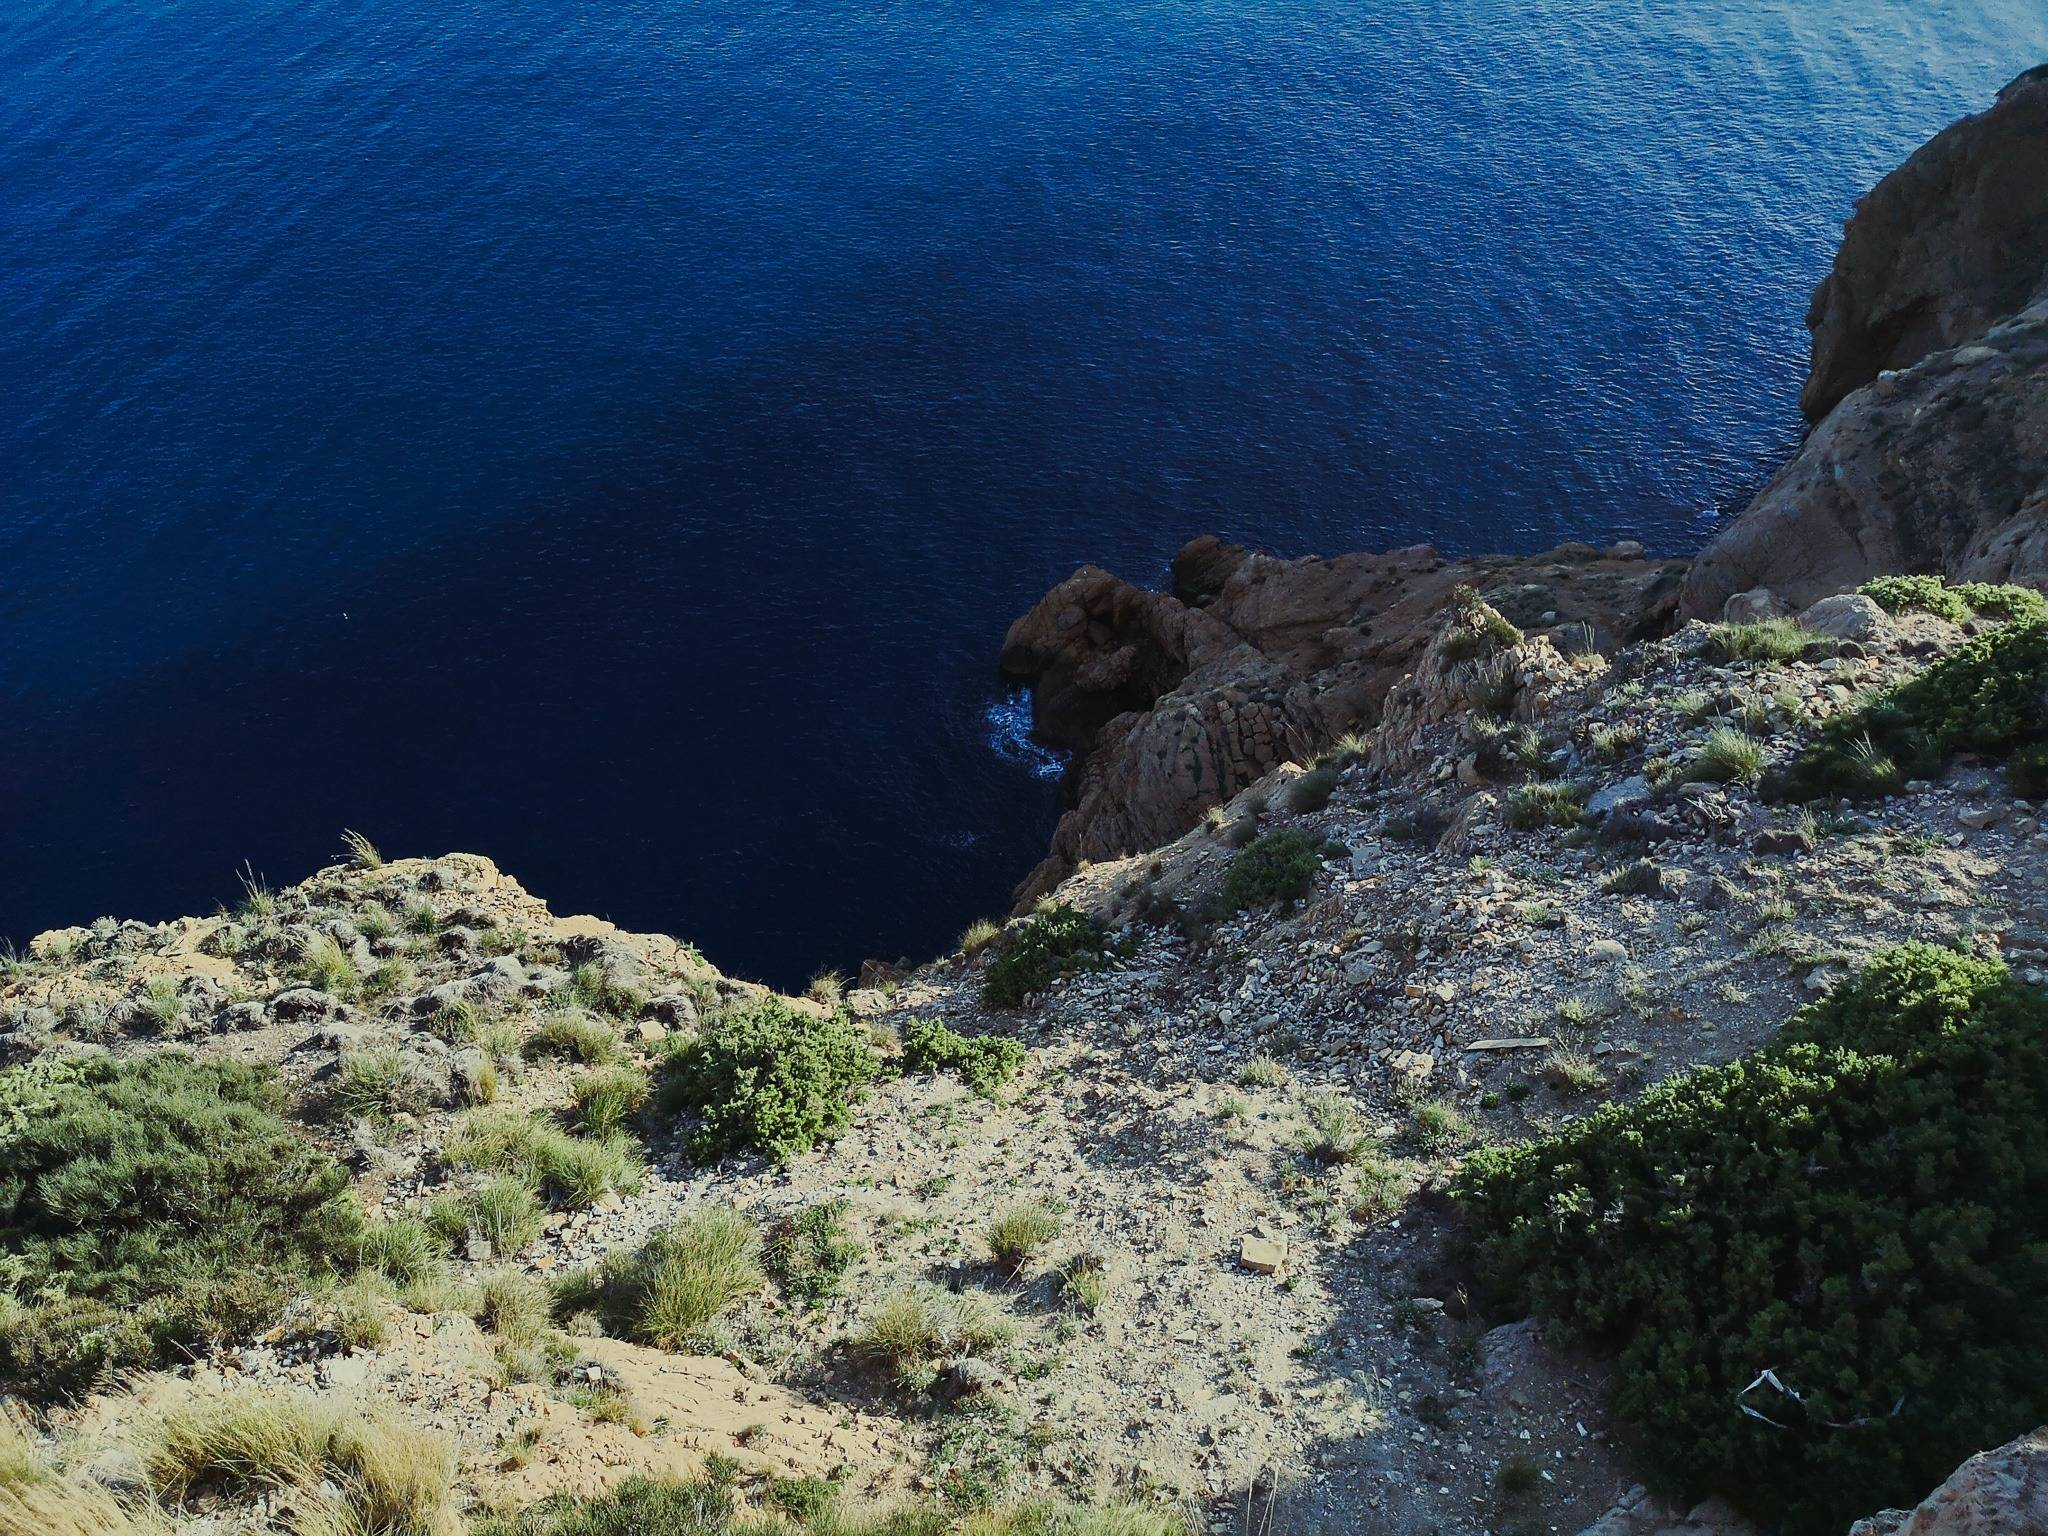 At the point, where Albir lighthouse was built, the height of the cliff facing the sea is about 112m. Photo by Alis Monte [CC BY-SA 4.0], via Connecting the Dots